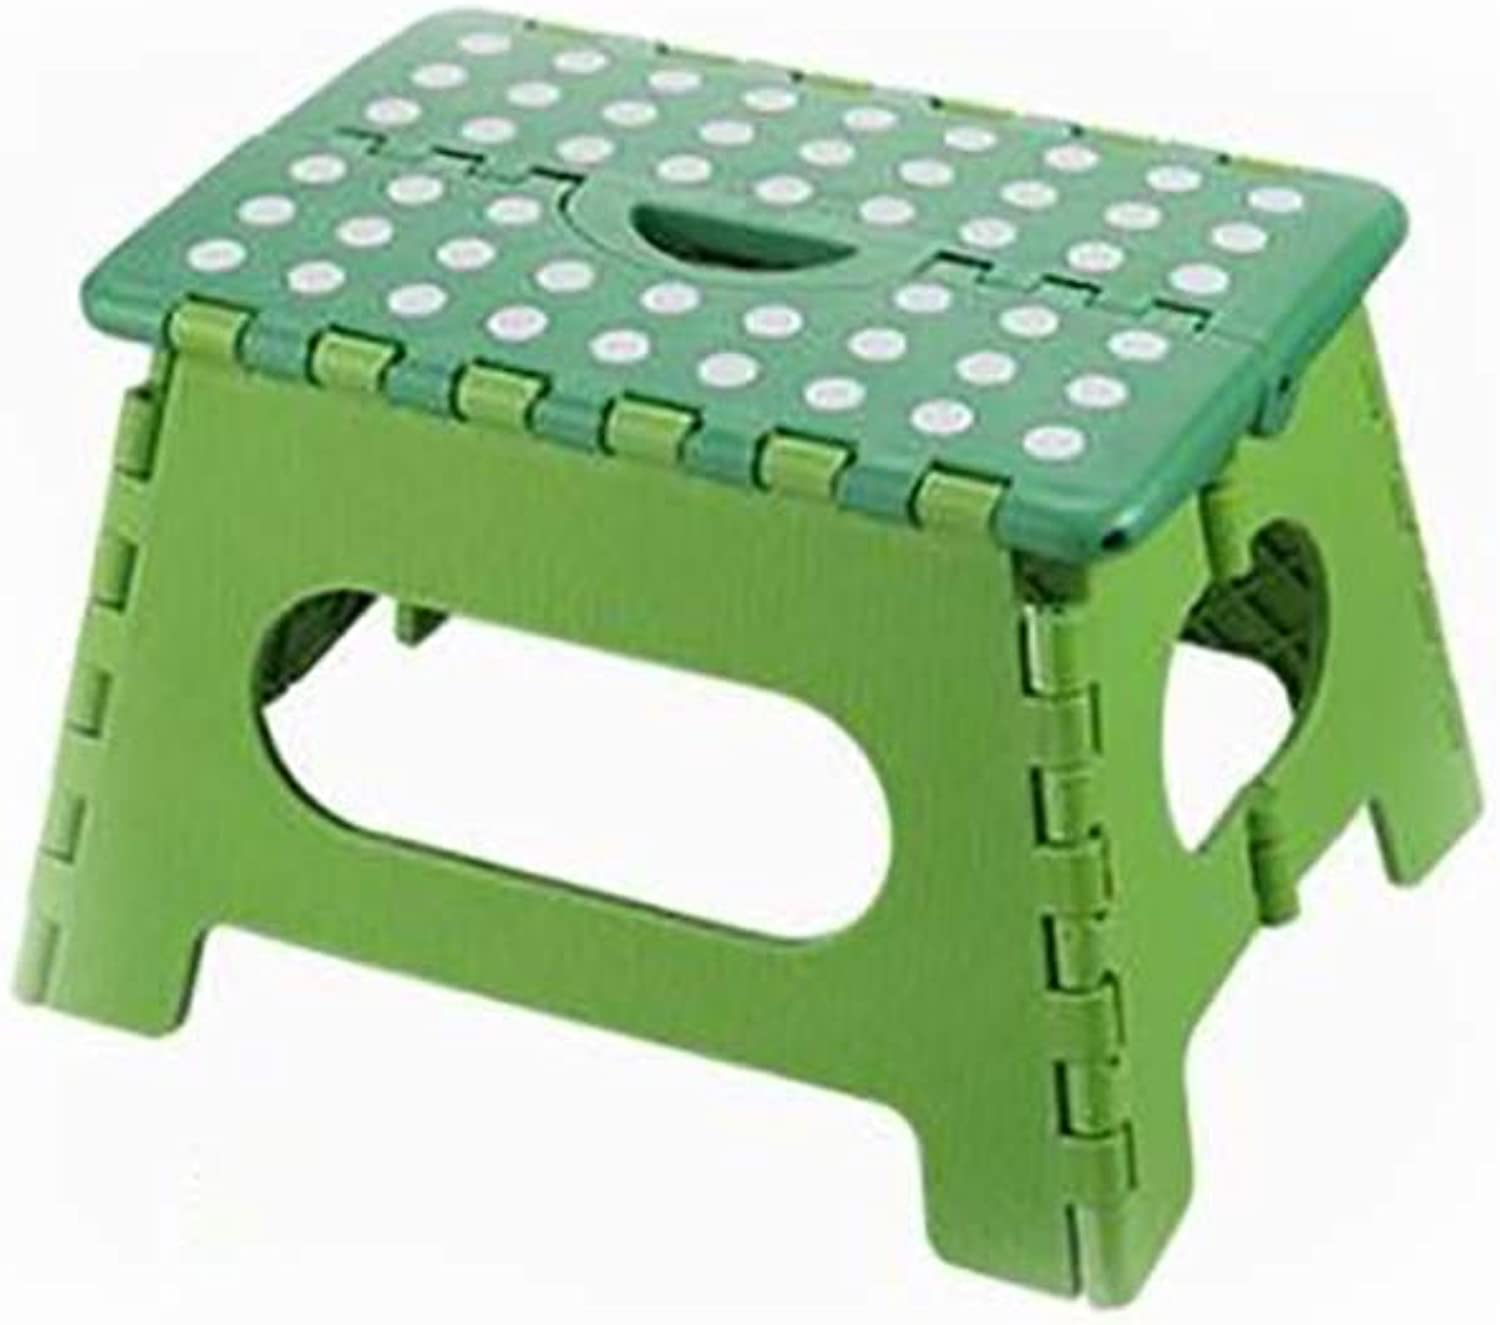 Folding Stool Lightweight Portable Plastic Folding Stool, Square Picnic Stool Folding Stool Dining Table Stool Fishing Stool GYJ